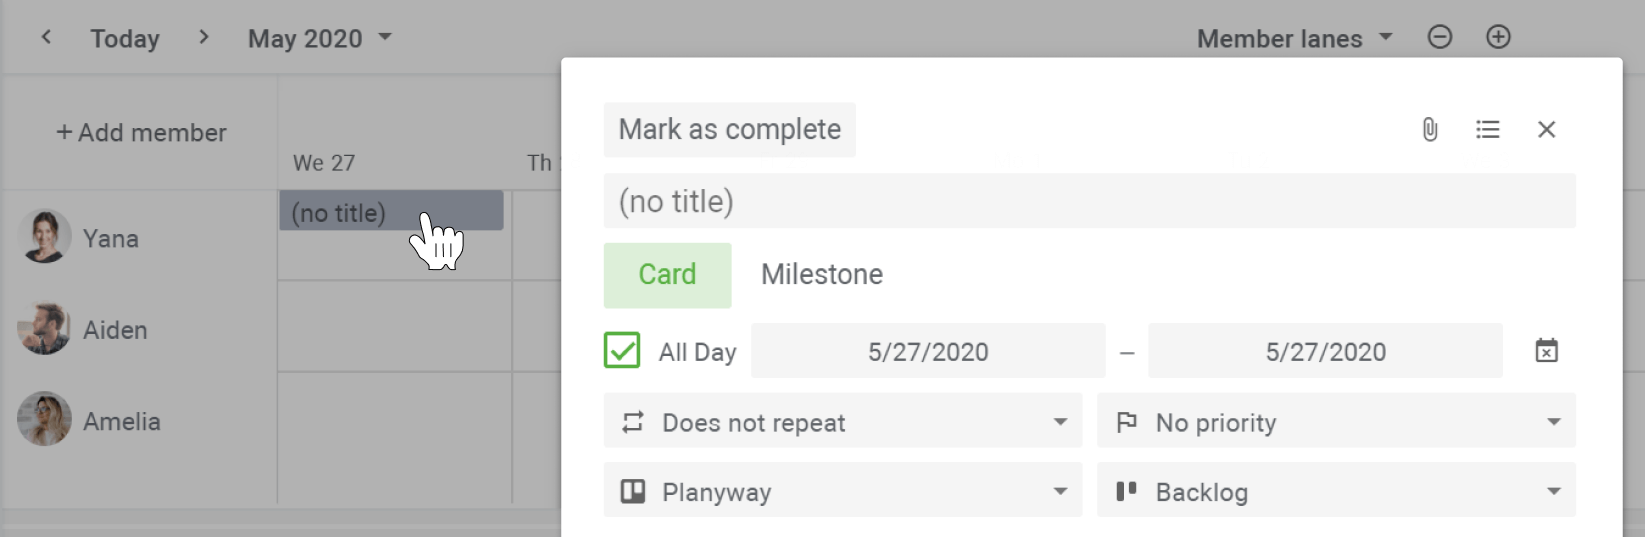 Planyway Getting Stated Add Card By Click